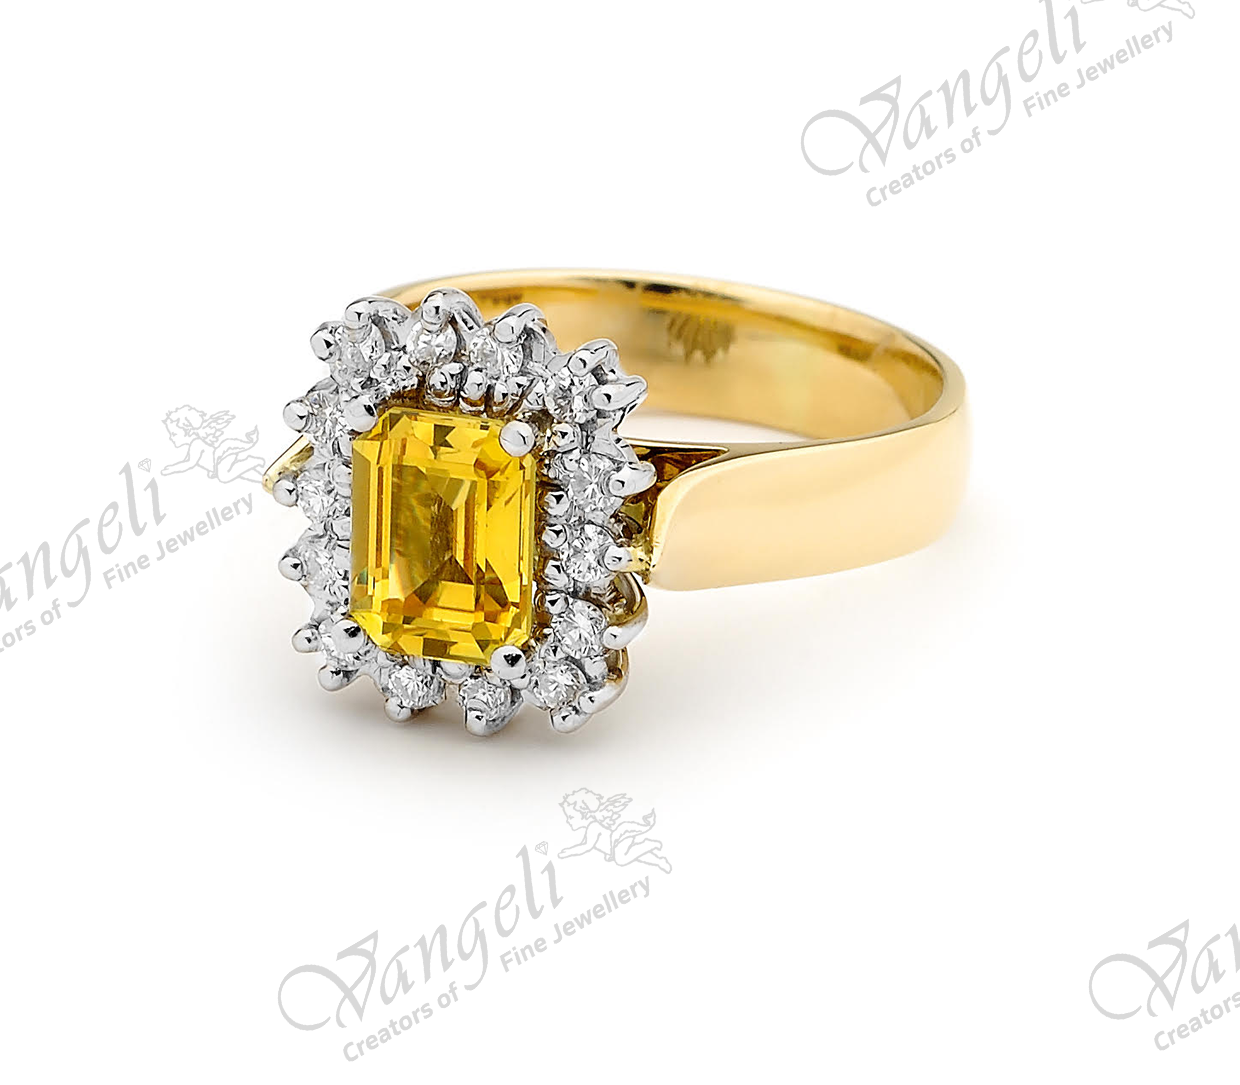 18ct white and yellow gold golden sapphire and diamond hand-made ring